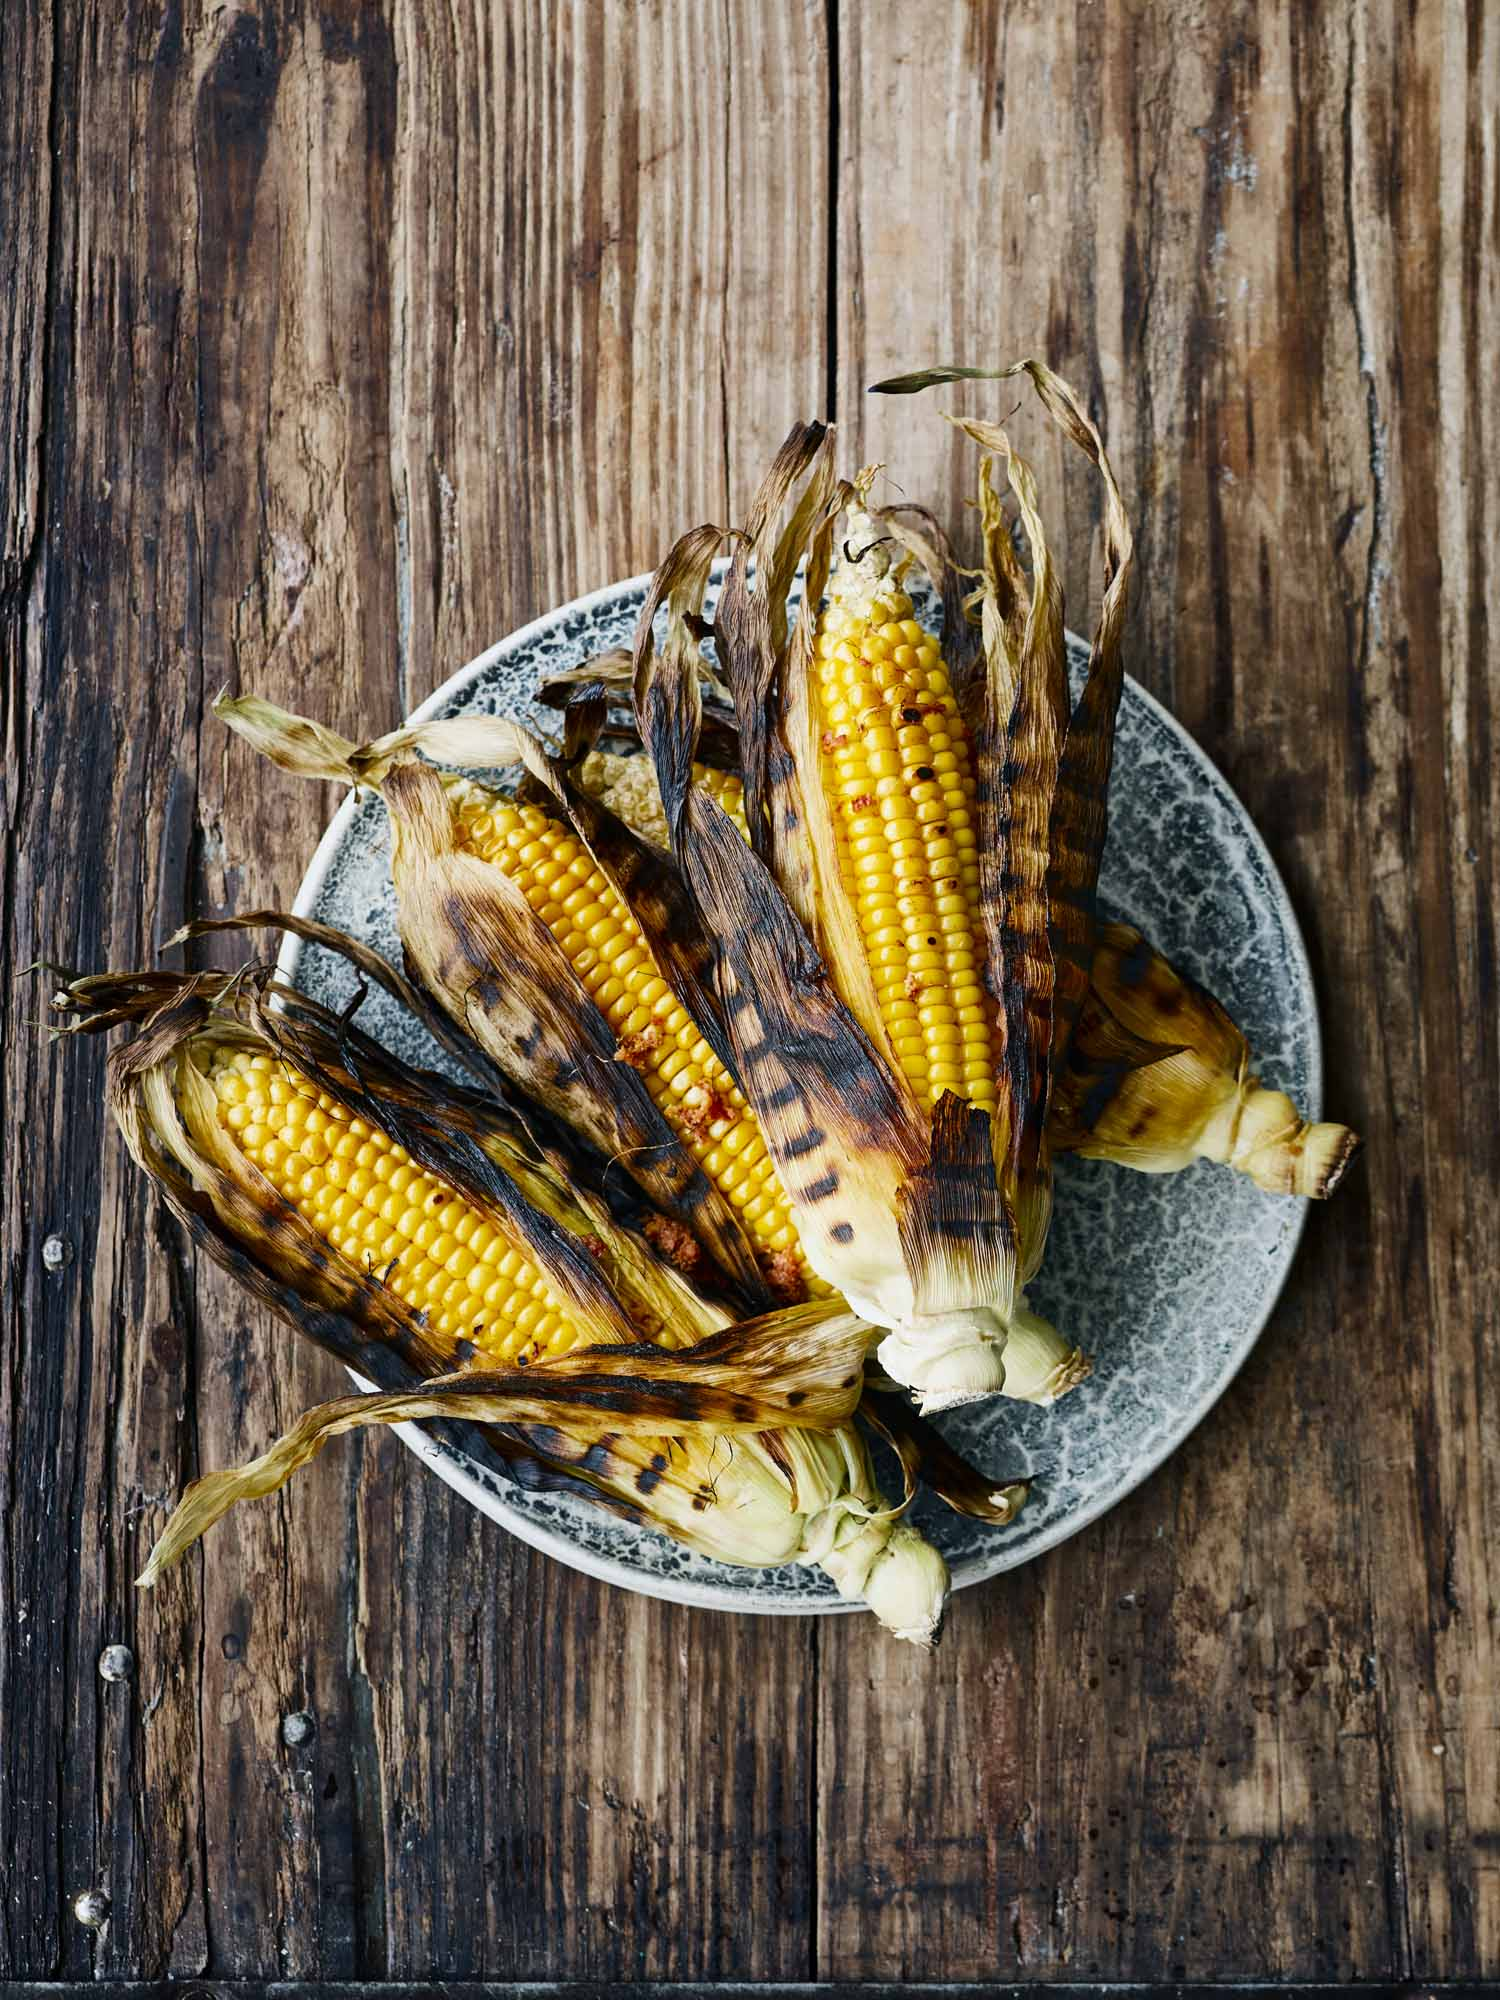 Corn on the Cob Grilled with Nduja and Marjoram